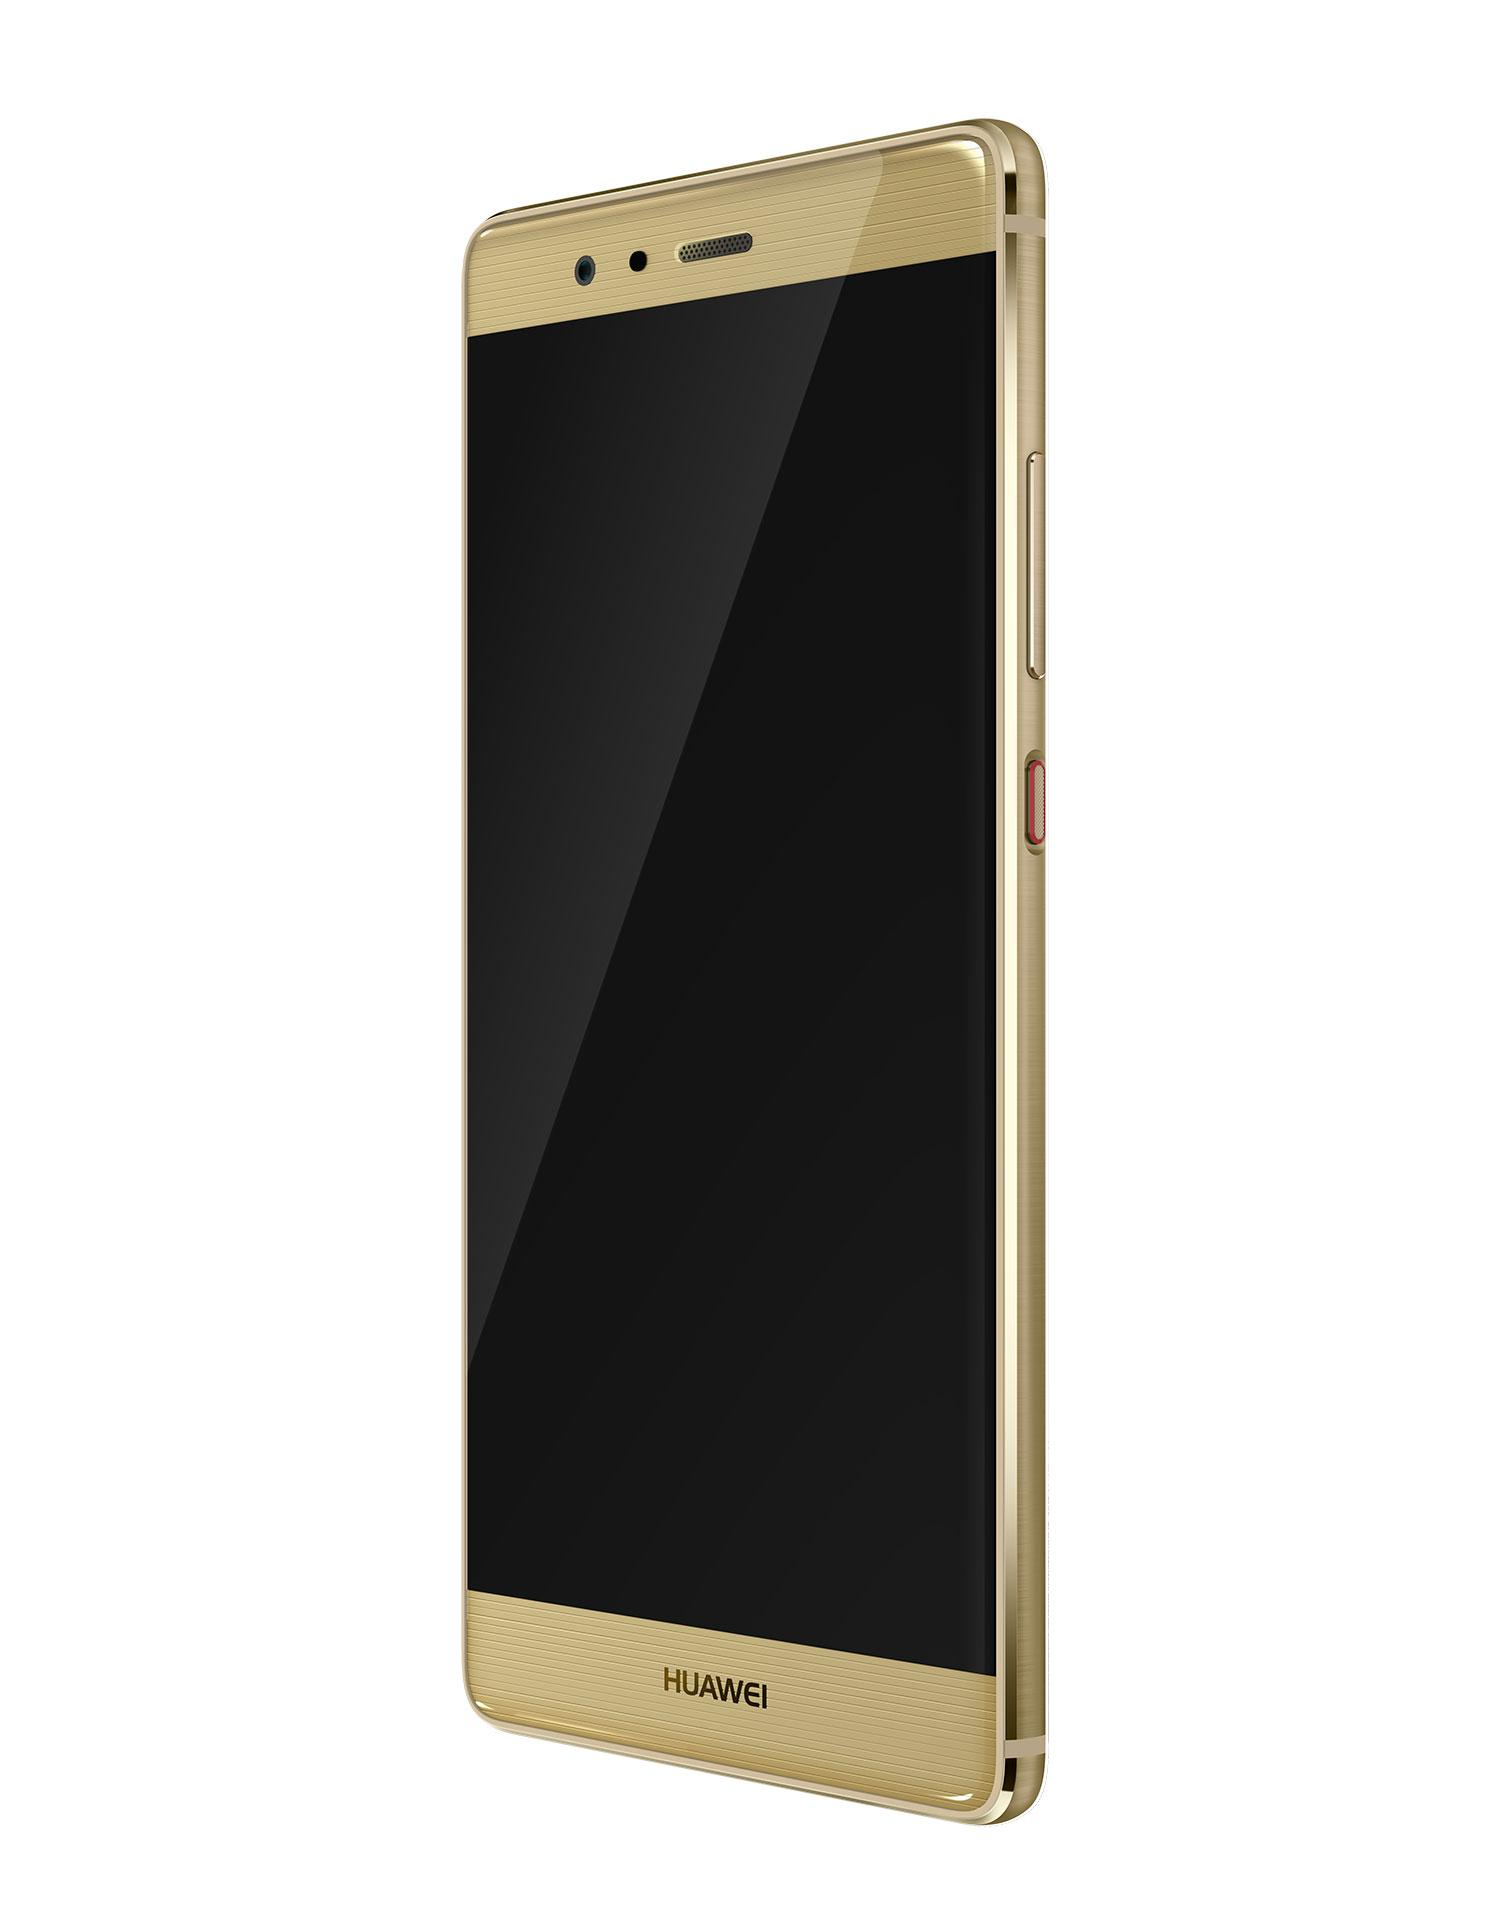 Huawei P9 color oro